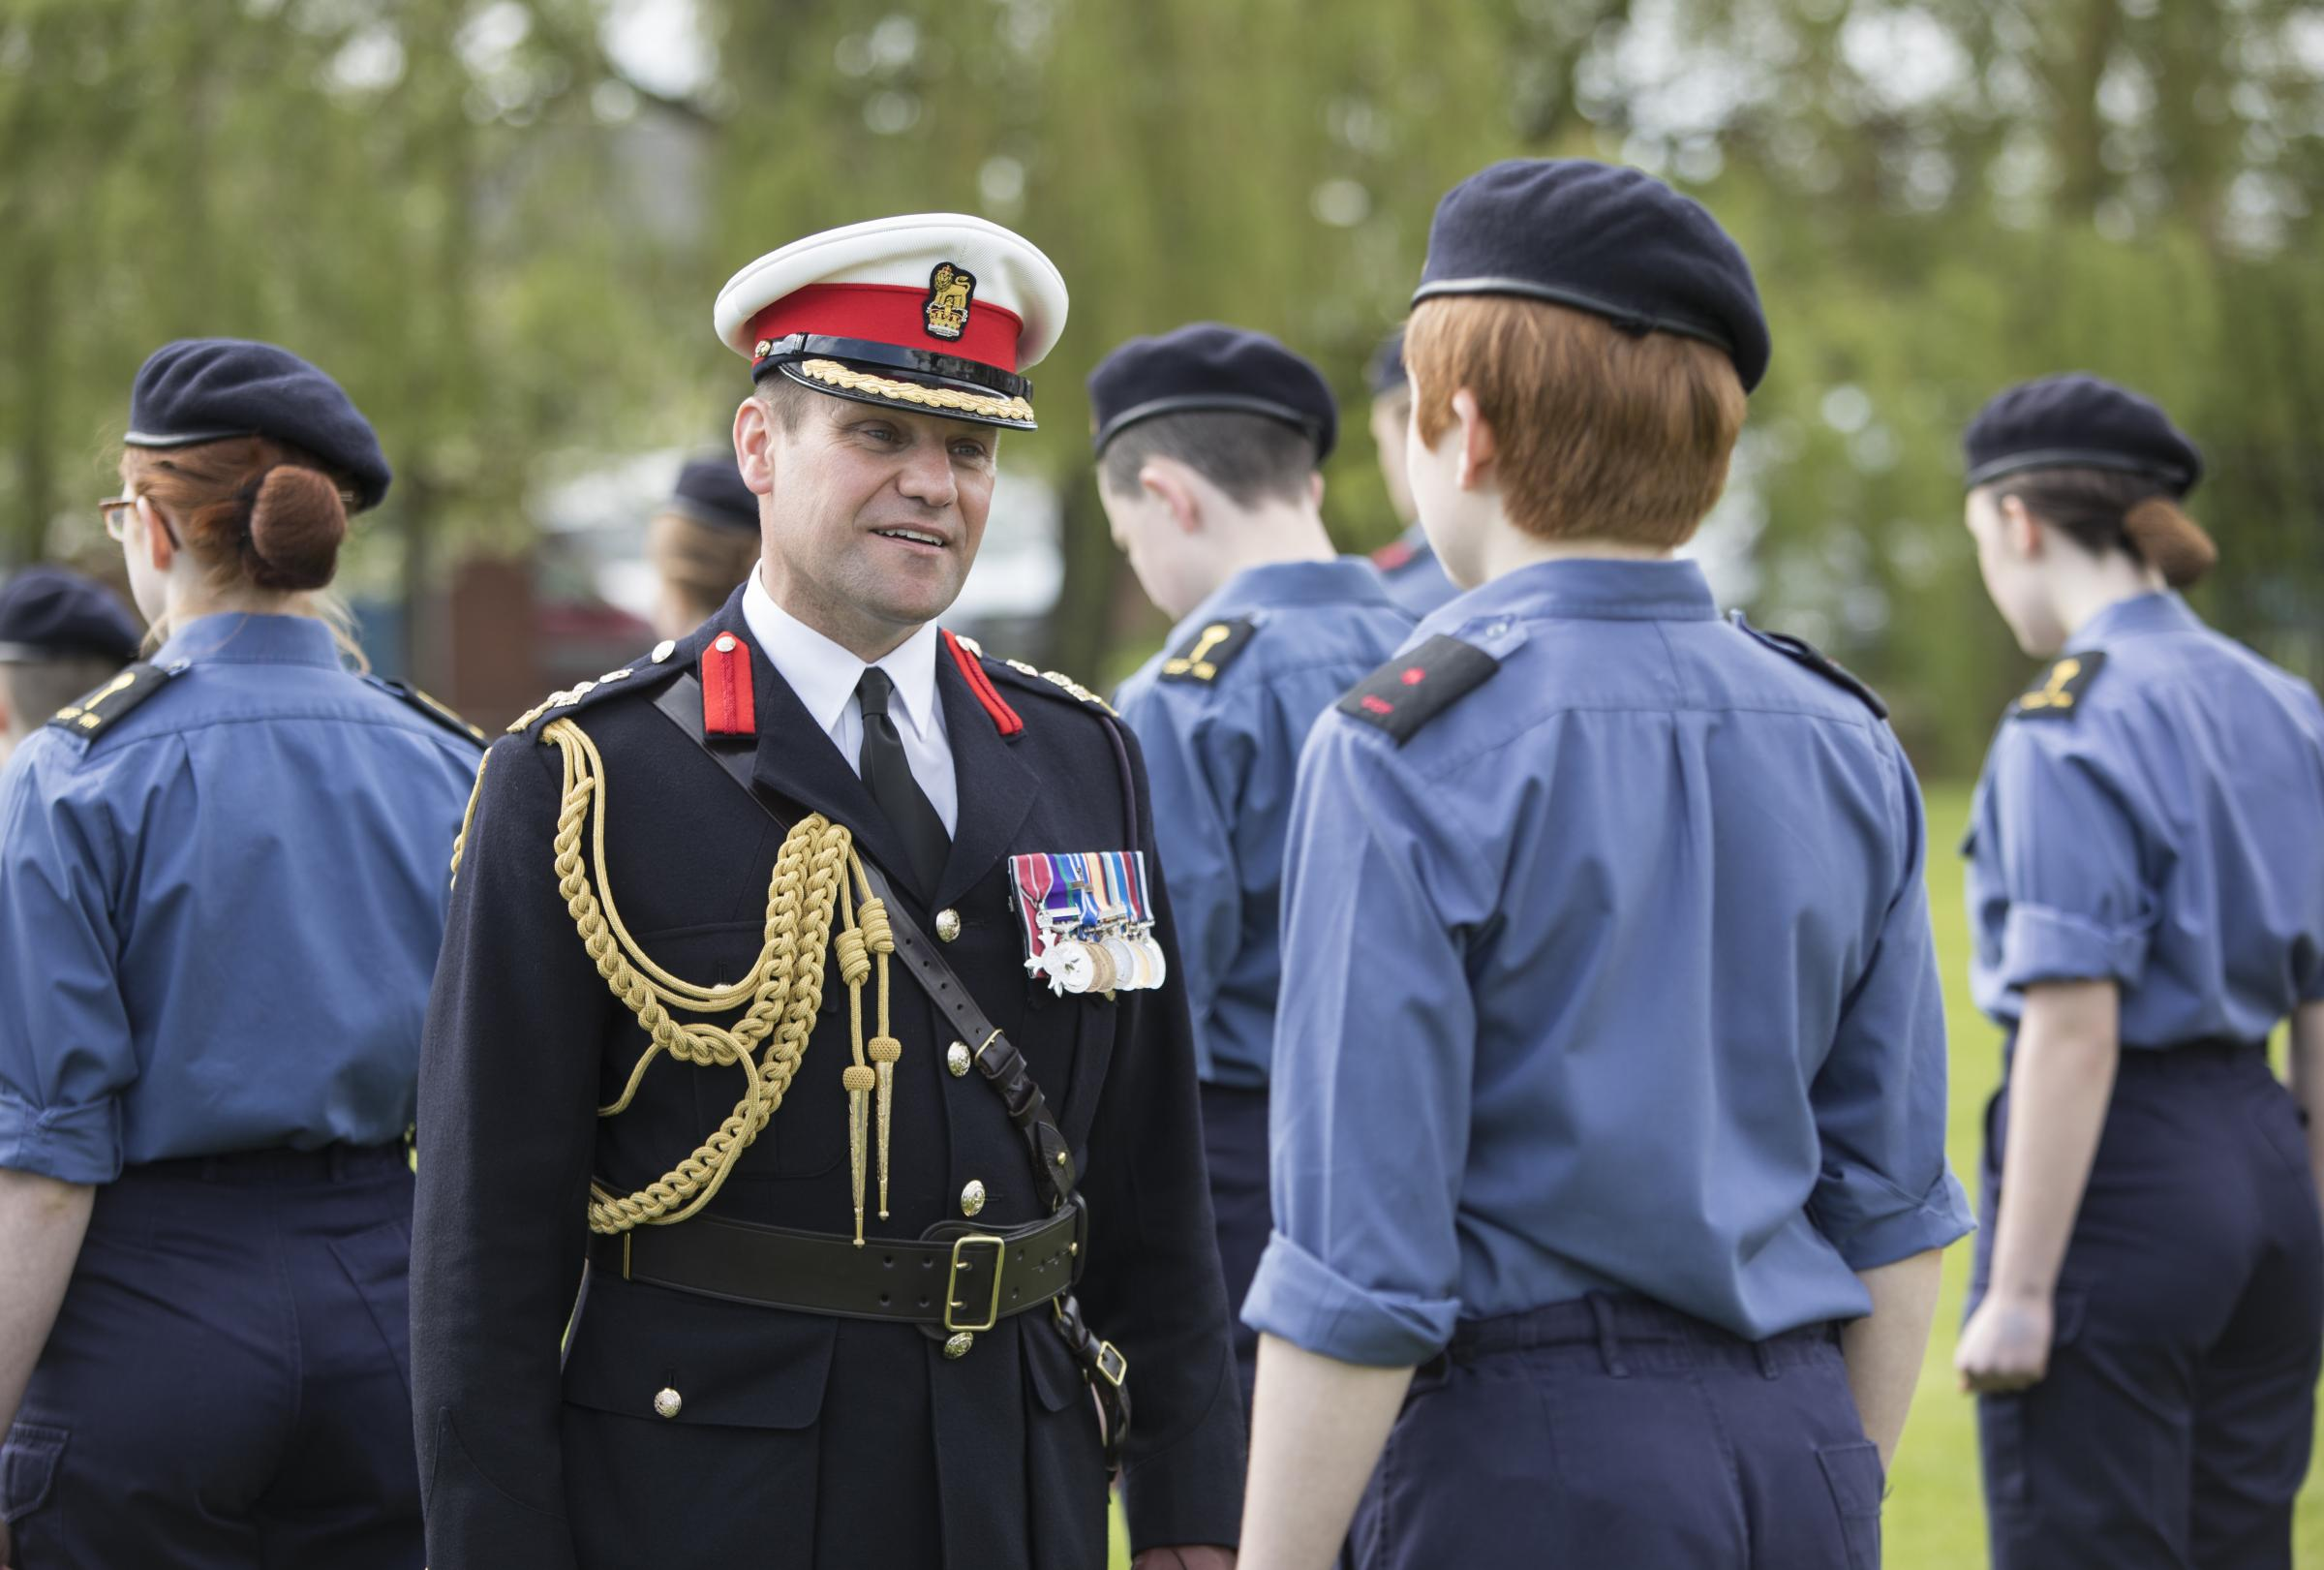 Brig Graeme 'Jock' Fraser chats to a young Cadet. Photo by Nanette Hepburn Photography